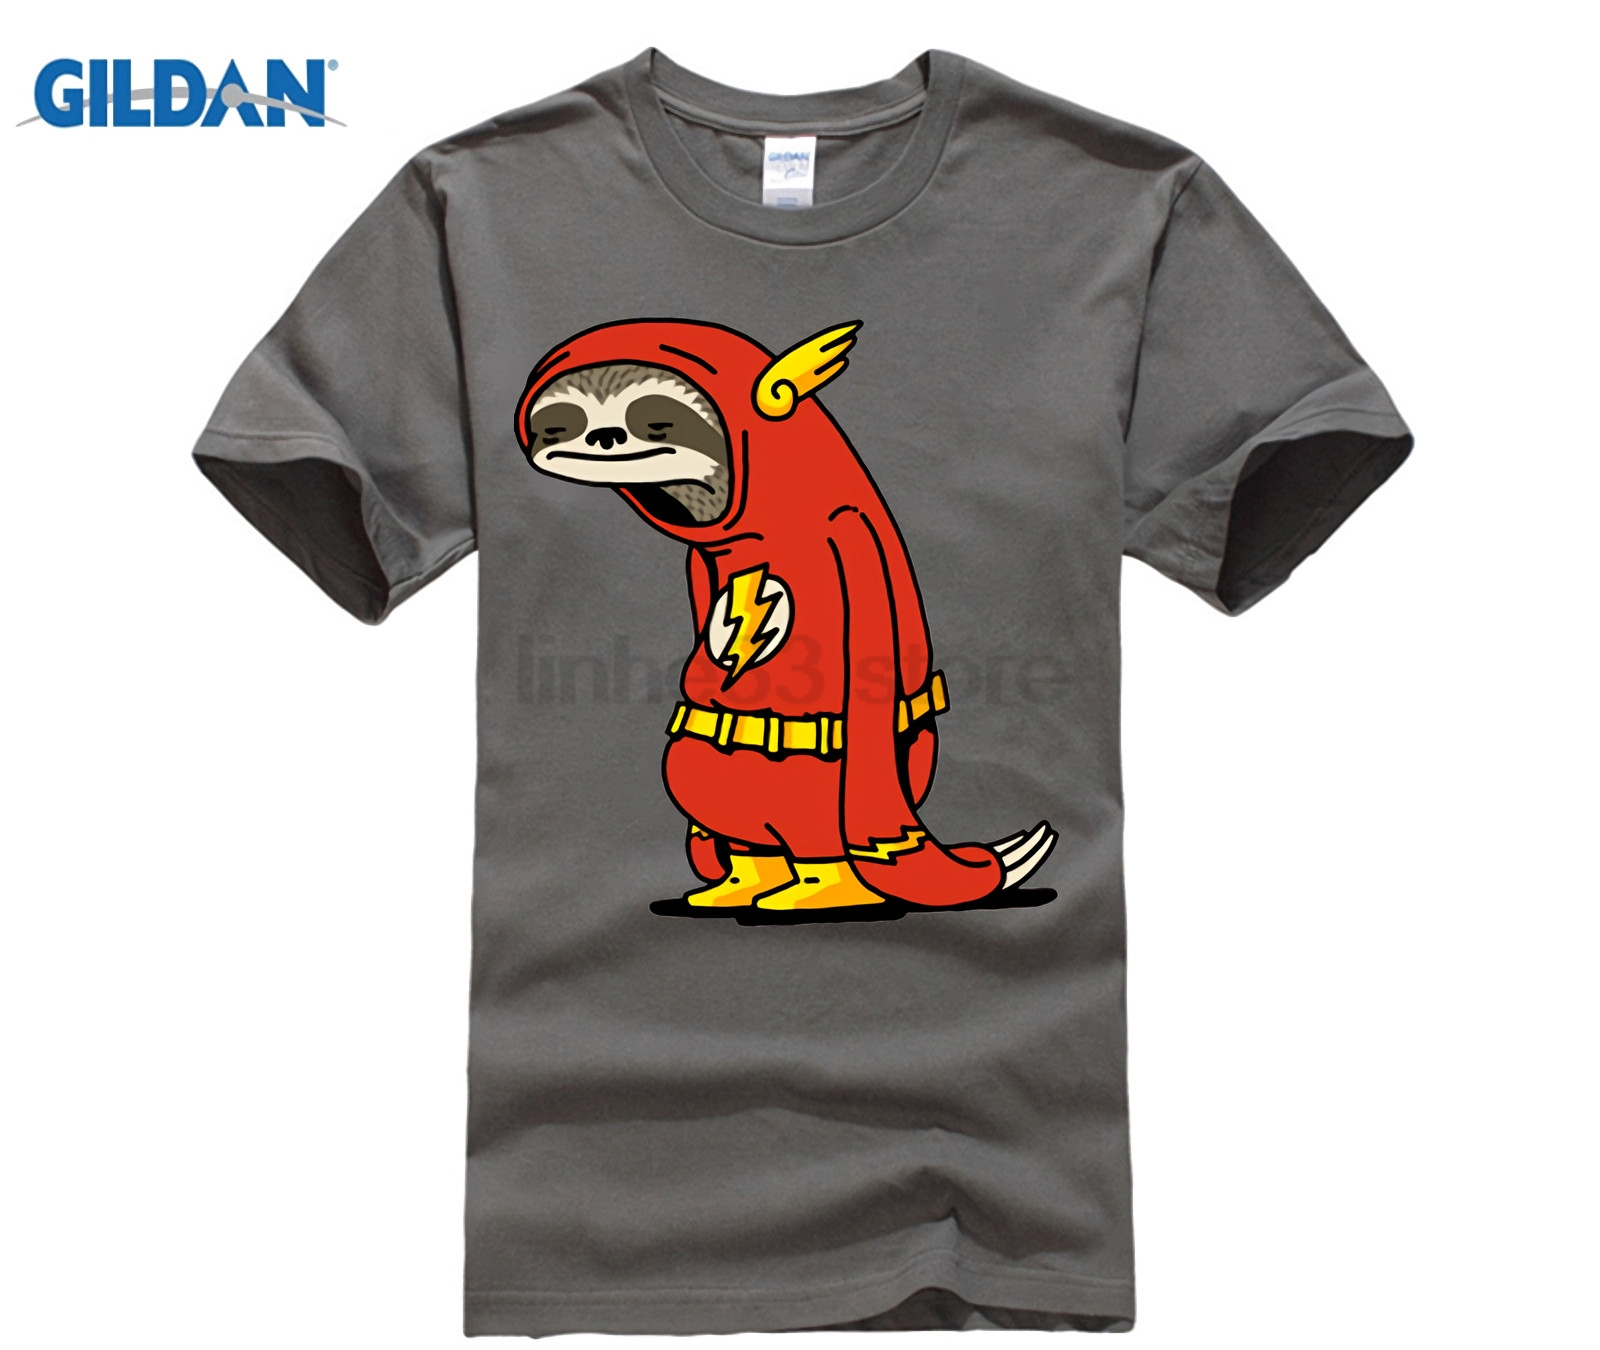 01456bcf Funny Sloth The Flash T shirts men The Neutral T shirt male super hero Red Sloth  tshirt harajuku Tops 100% cotton Tees camisetas-in T-Shirts from Men's ...